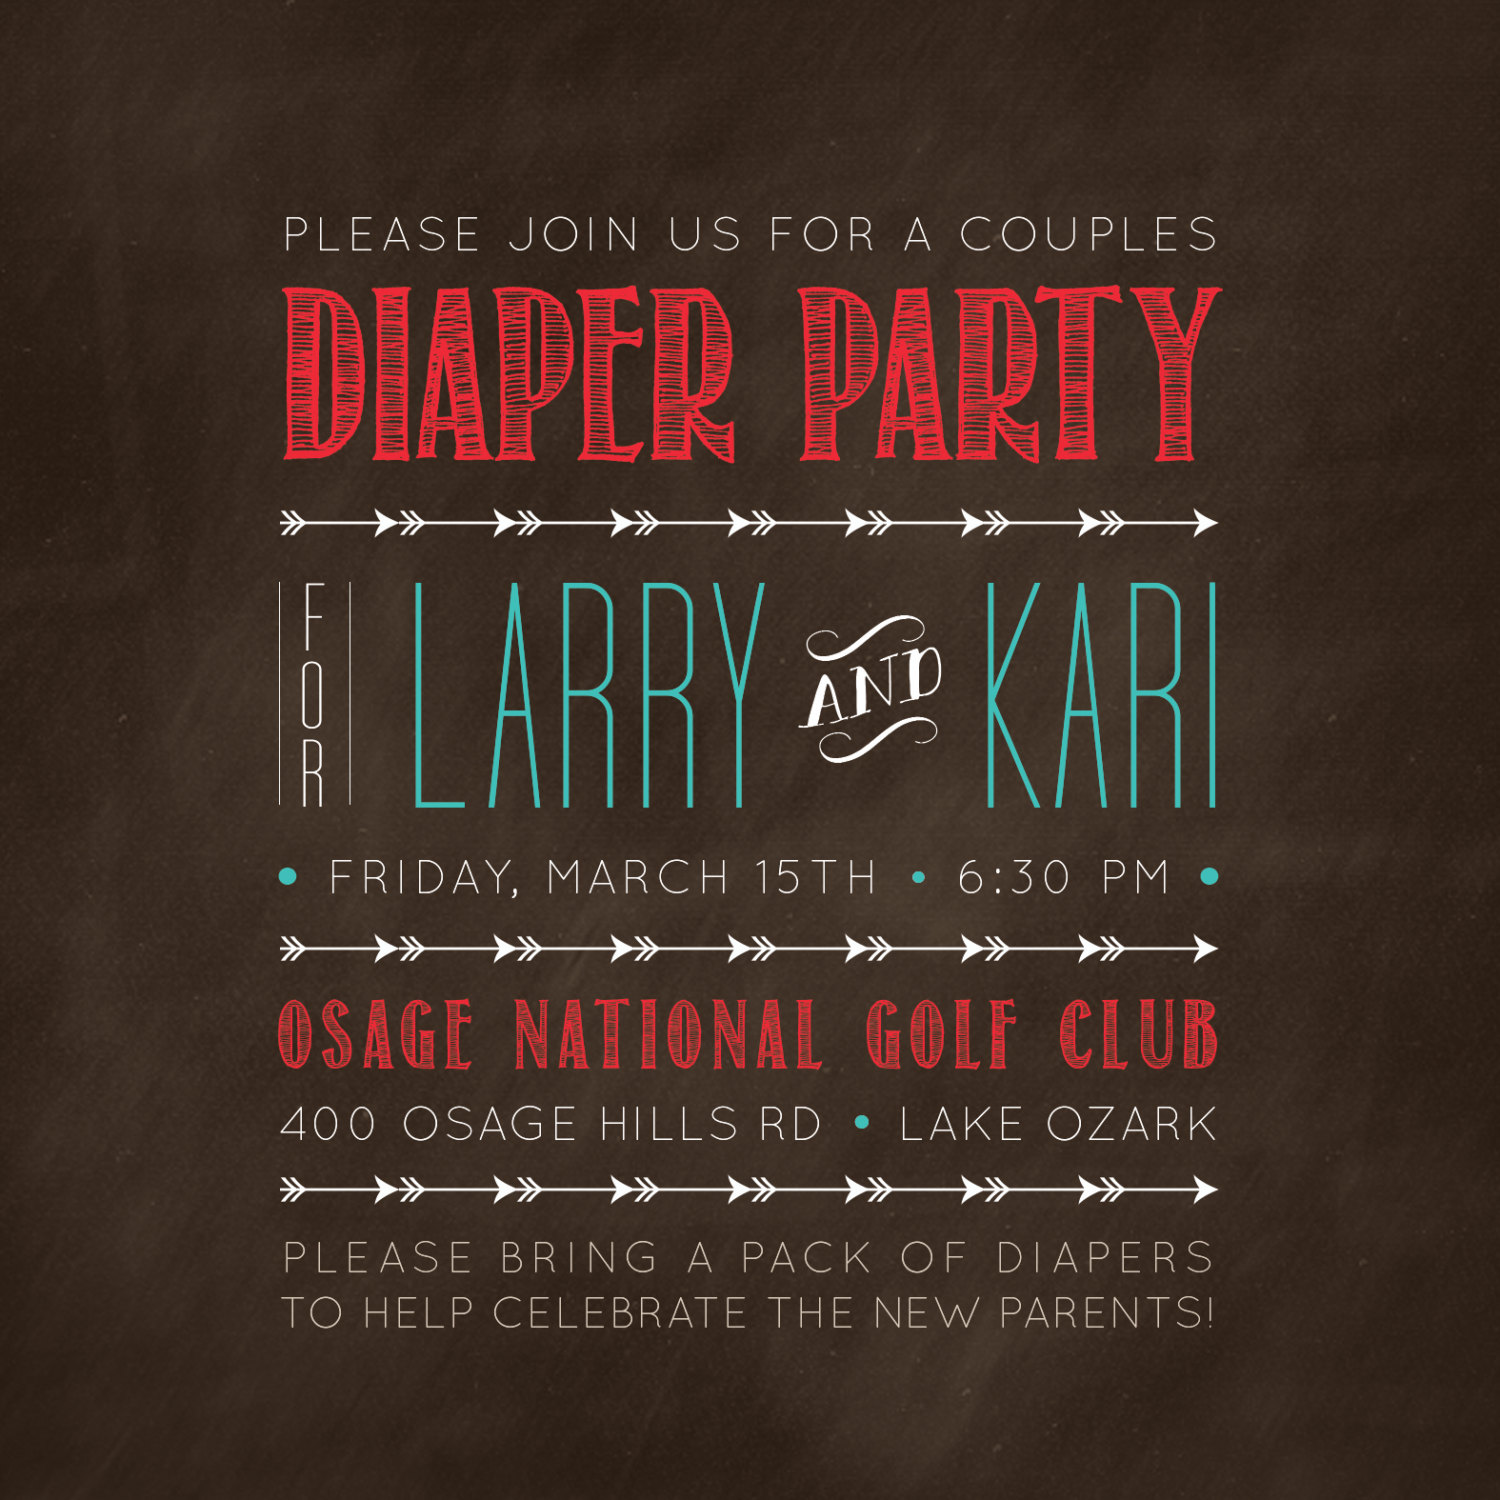 5x5 Rustic Arrows Couples Diaper Party Invitation // Turquoise, Red ...